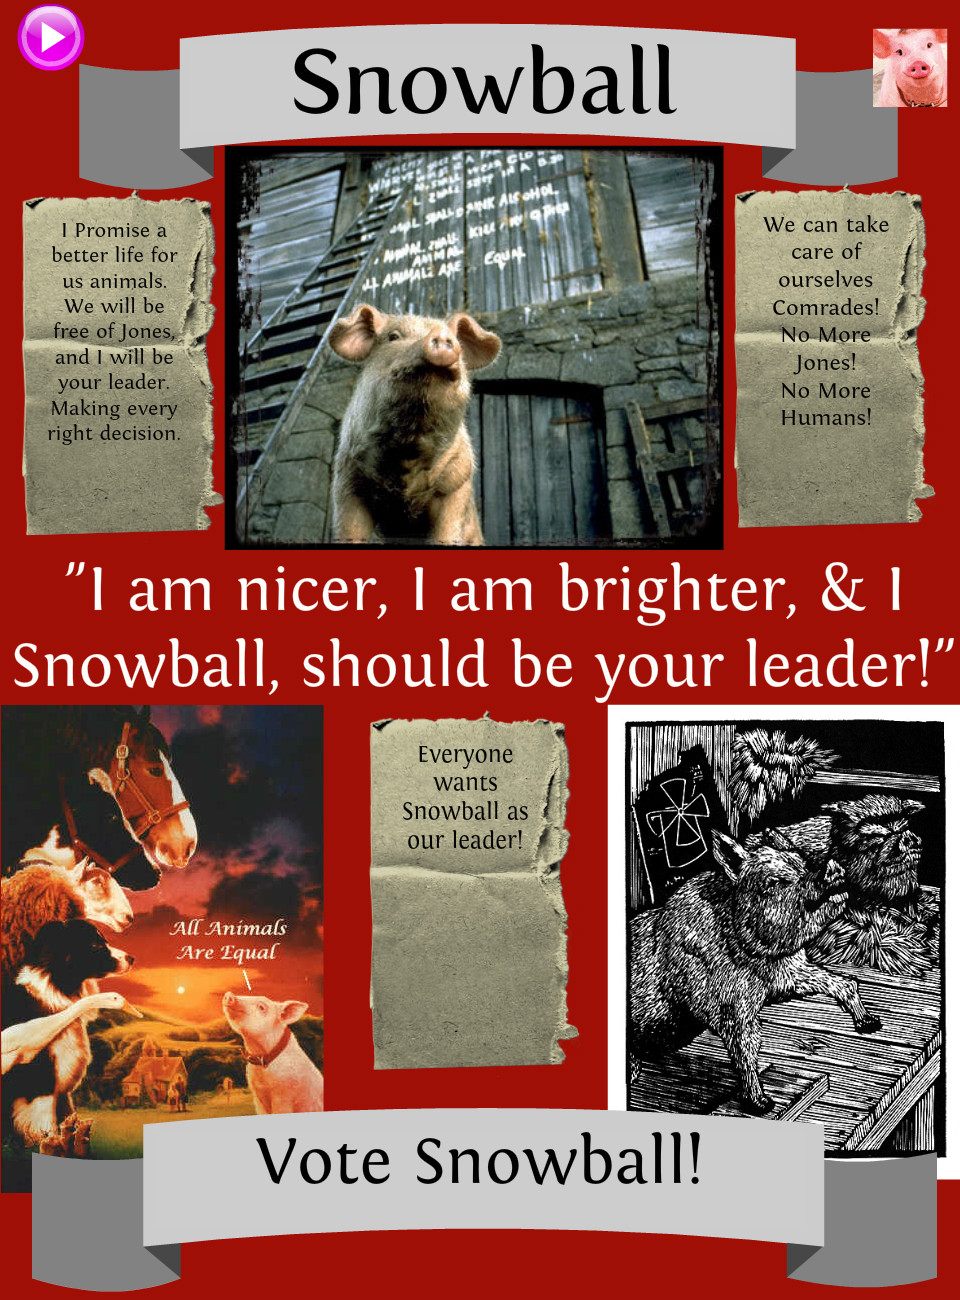 animal farm speech snowball The distinguishing mark of man is the hand, the instrument with which he does all his mischief -snowball snowball was a major figure in animal farm politics until he was exiled from the farm.